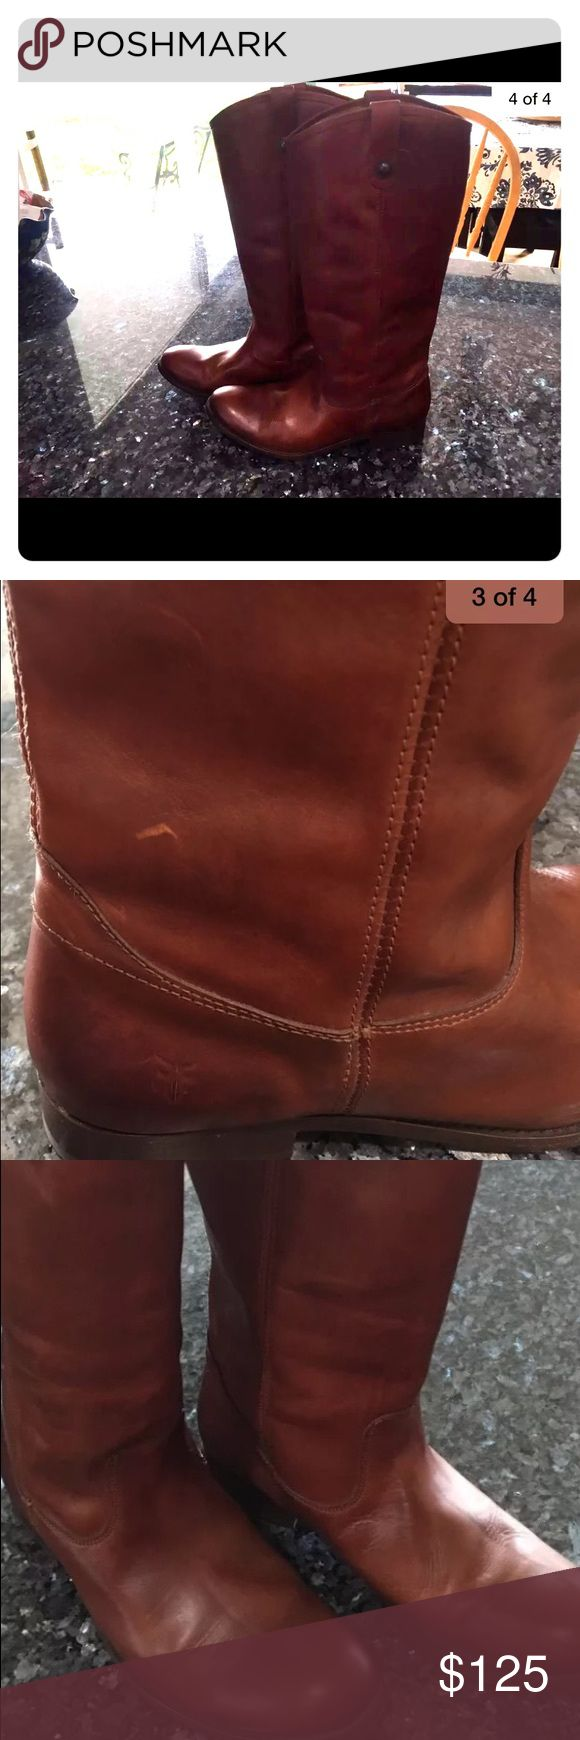 Women's Frye riding boot extended calf version Size 11, excellent condition, minor imperfection as shown in picture. Frye Shoes Winter & Rain Boots